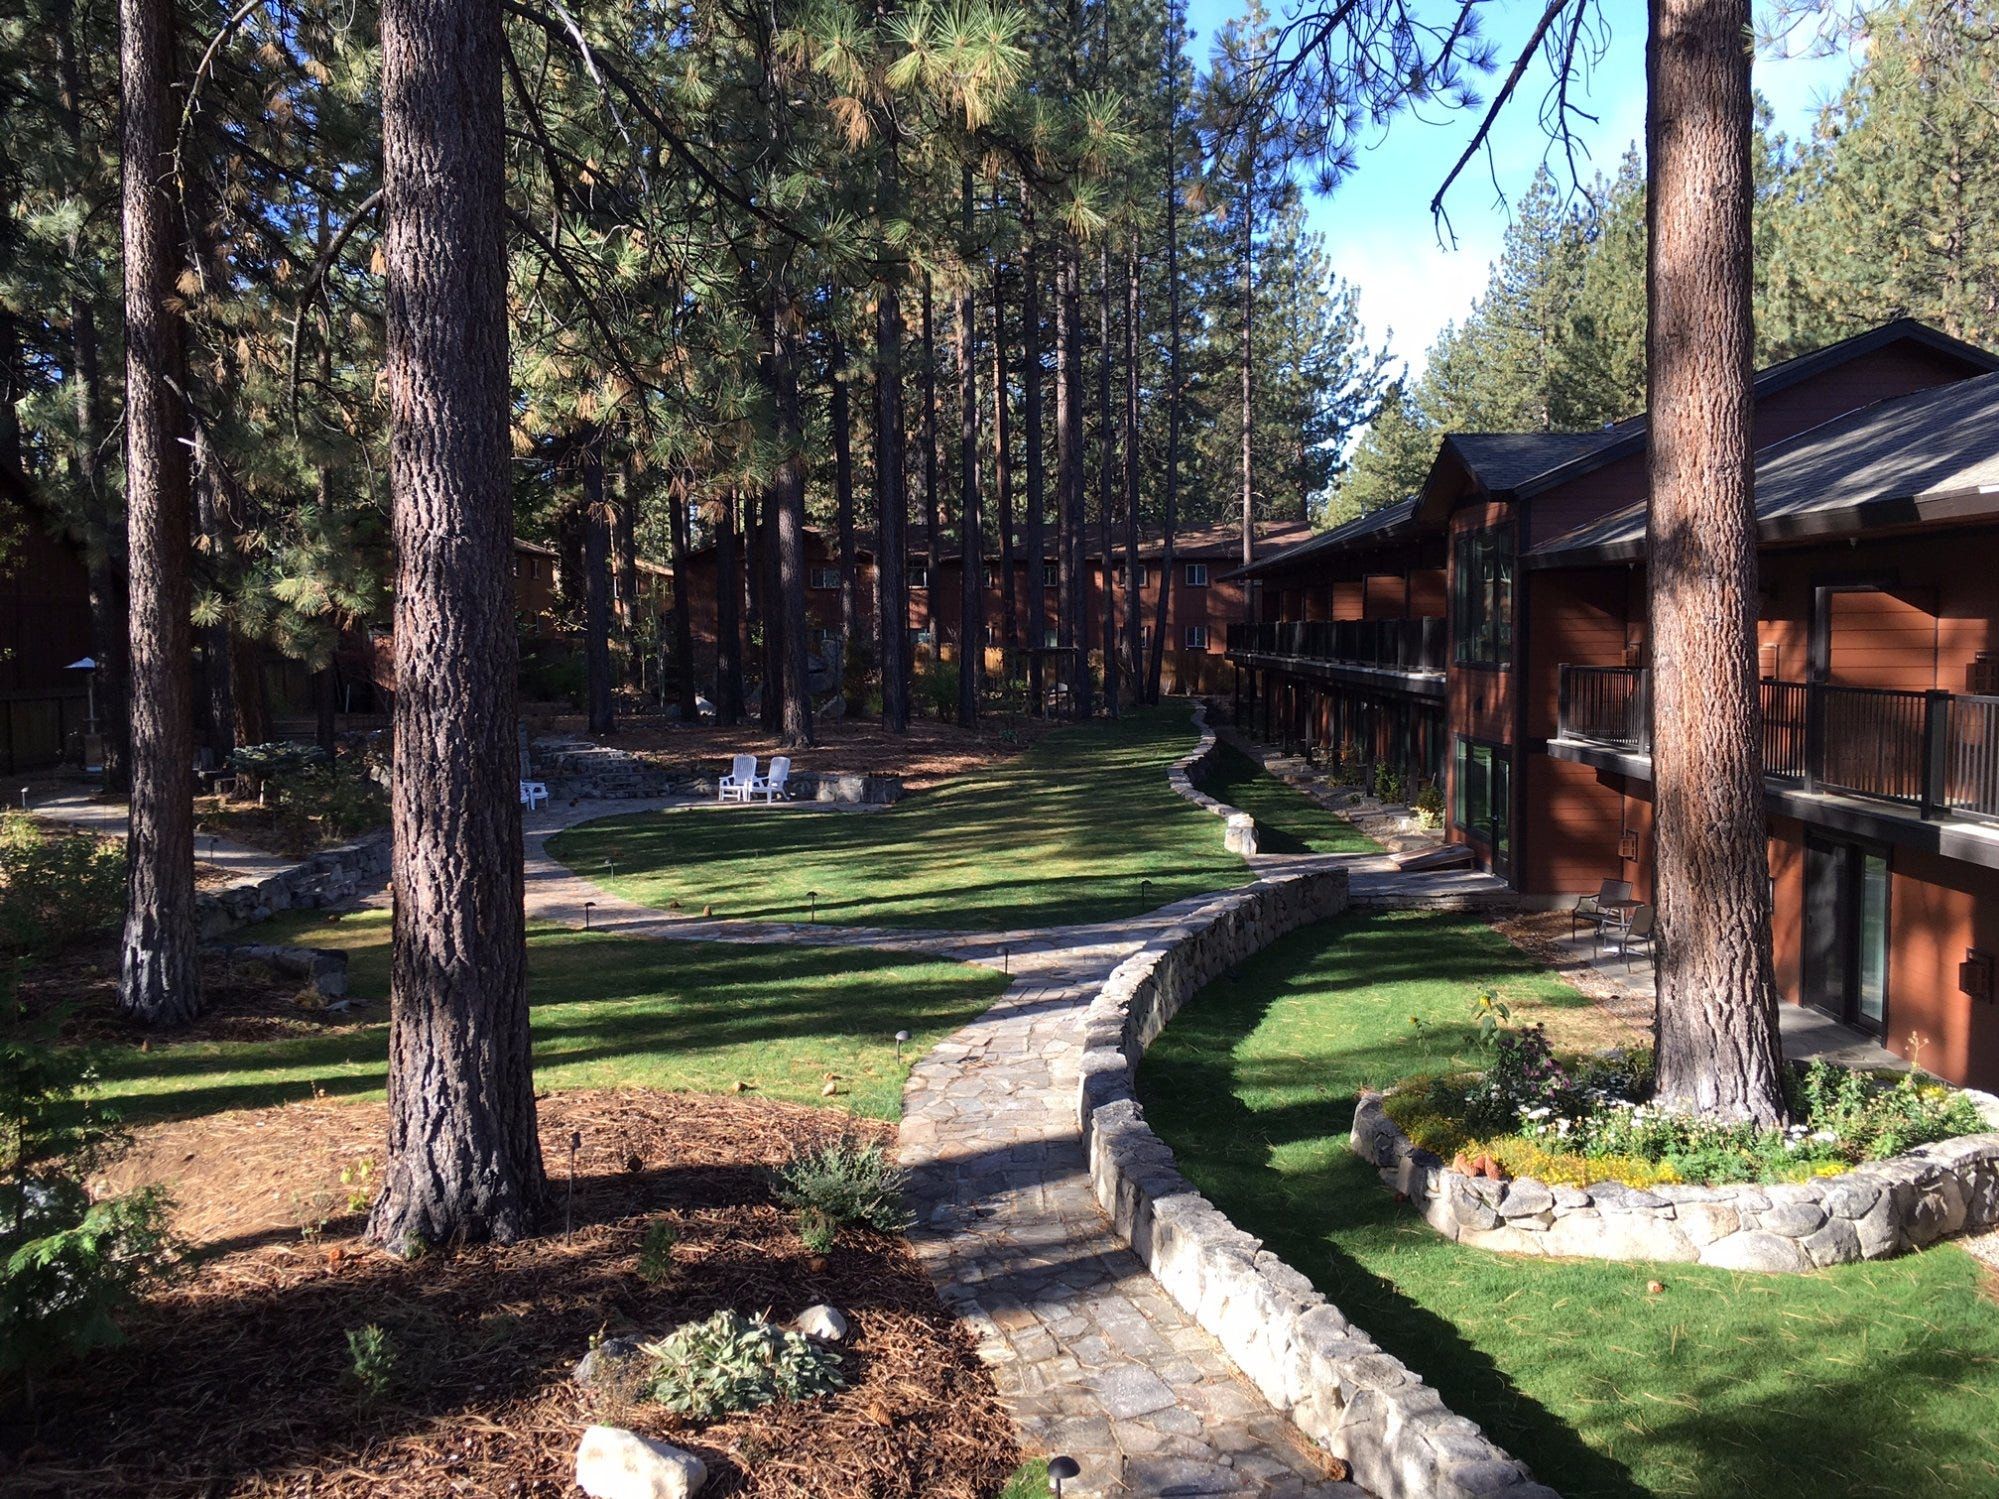 No. 7: Deerfield Lodge at Heavenly in South Lake Tahoe, California.